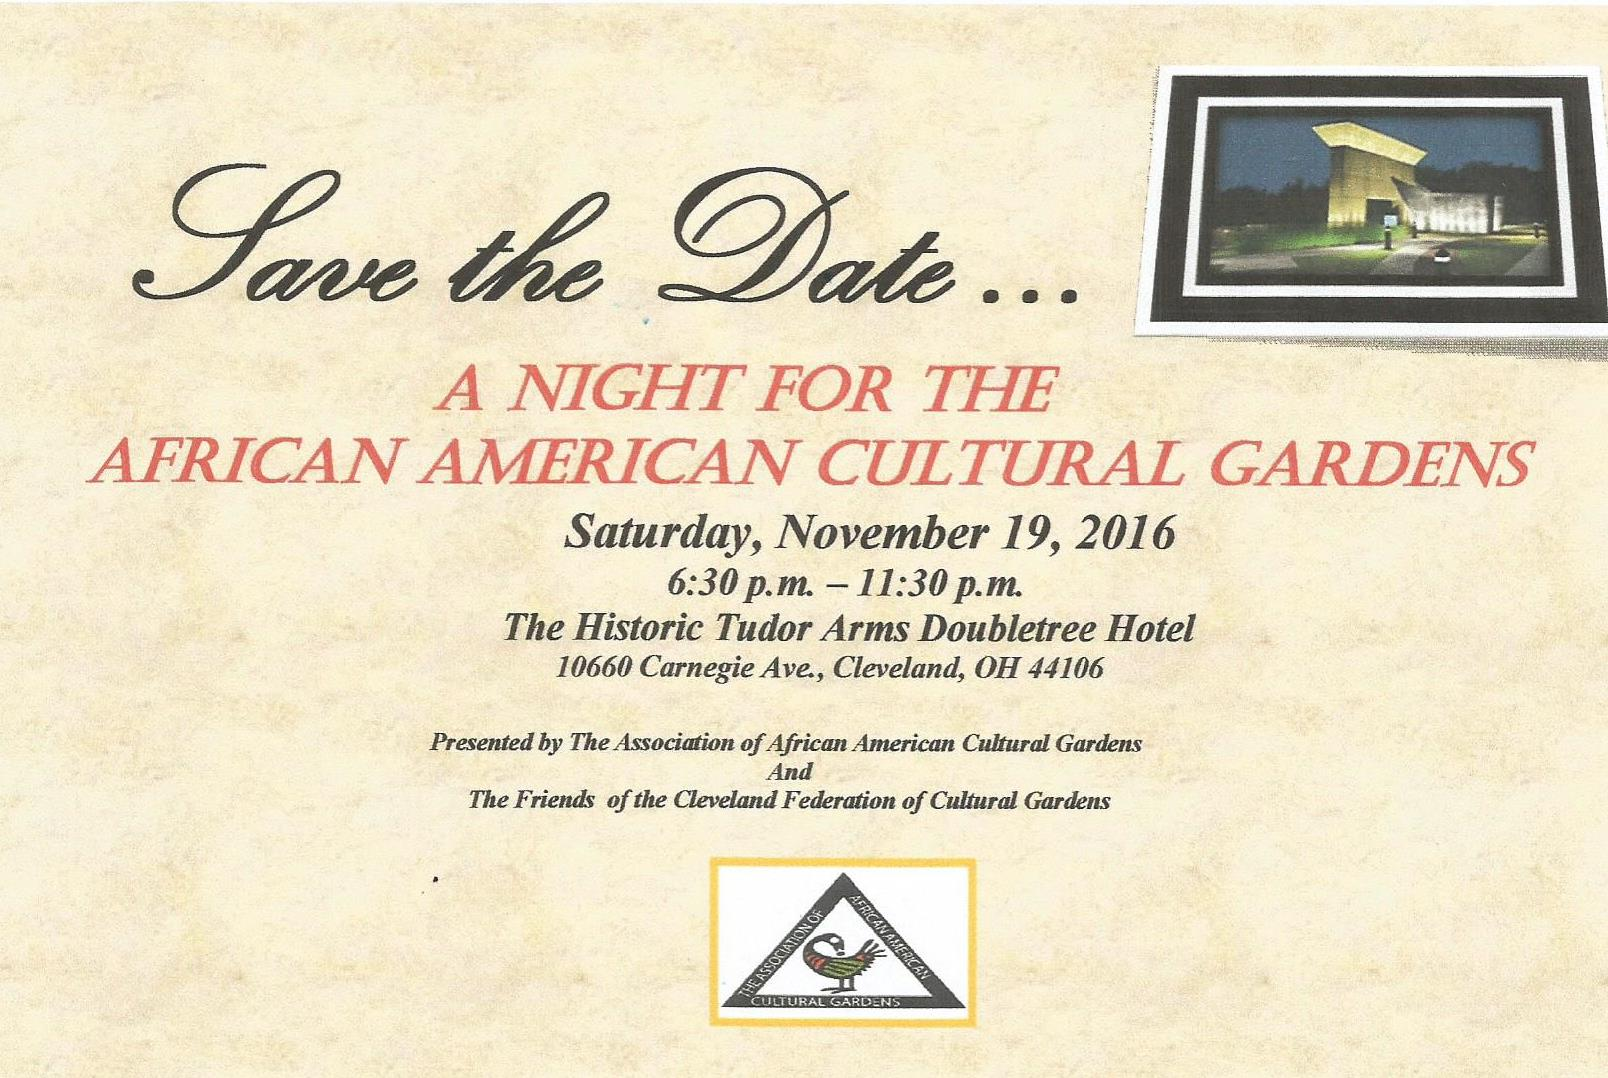 A Night For The African American Cultural Gardens